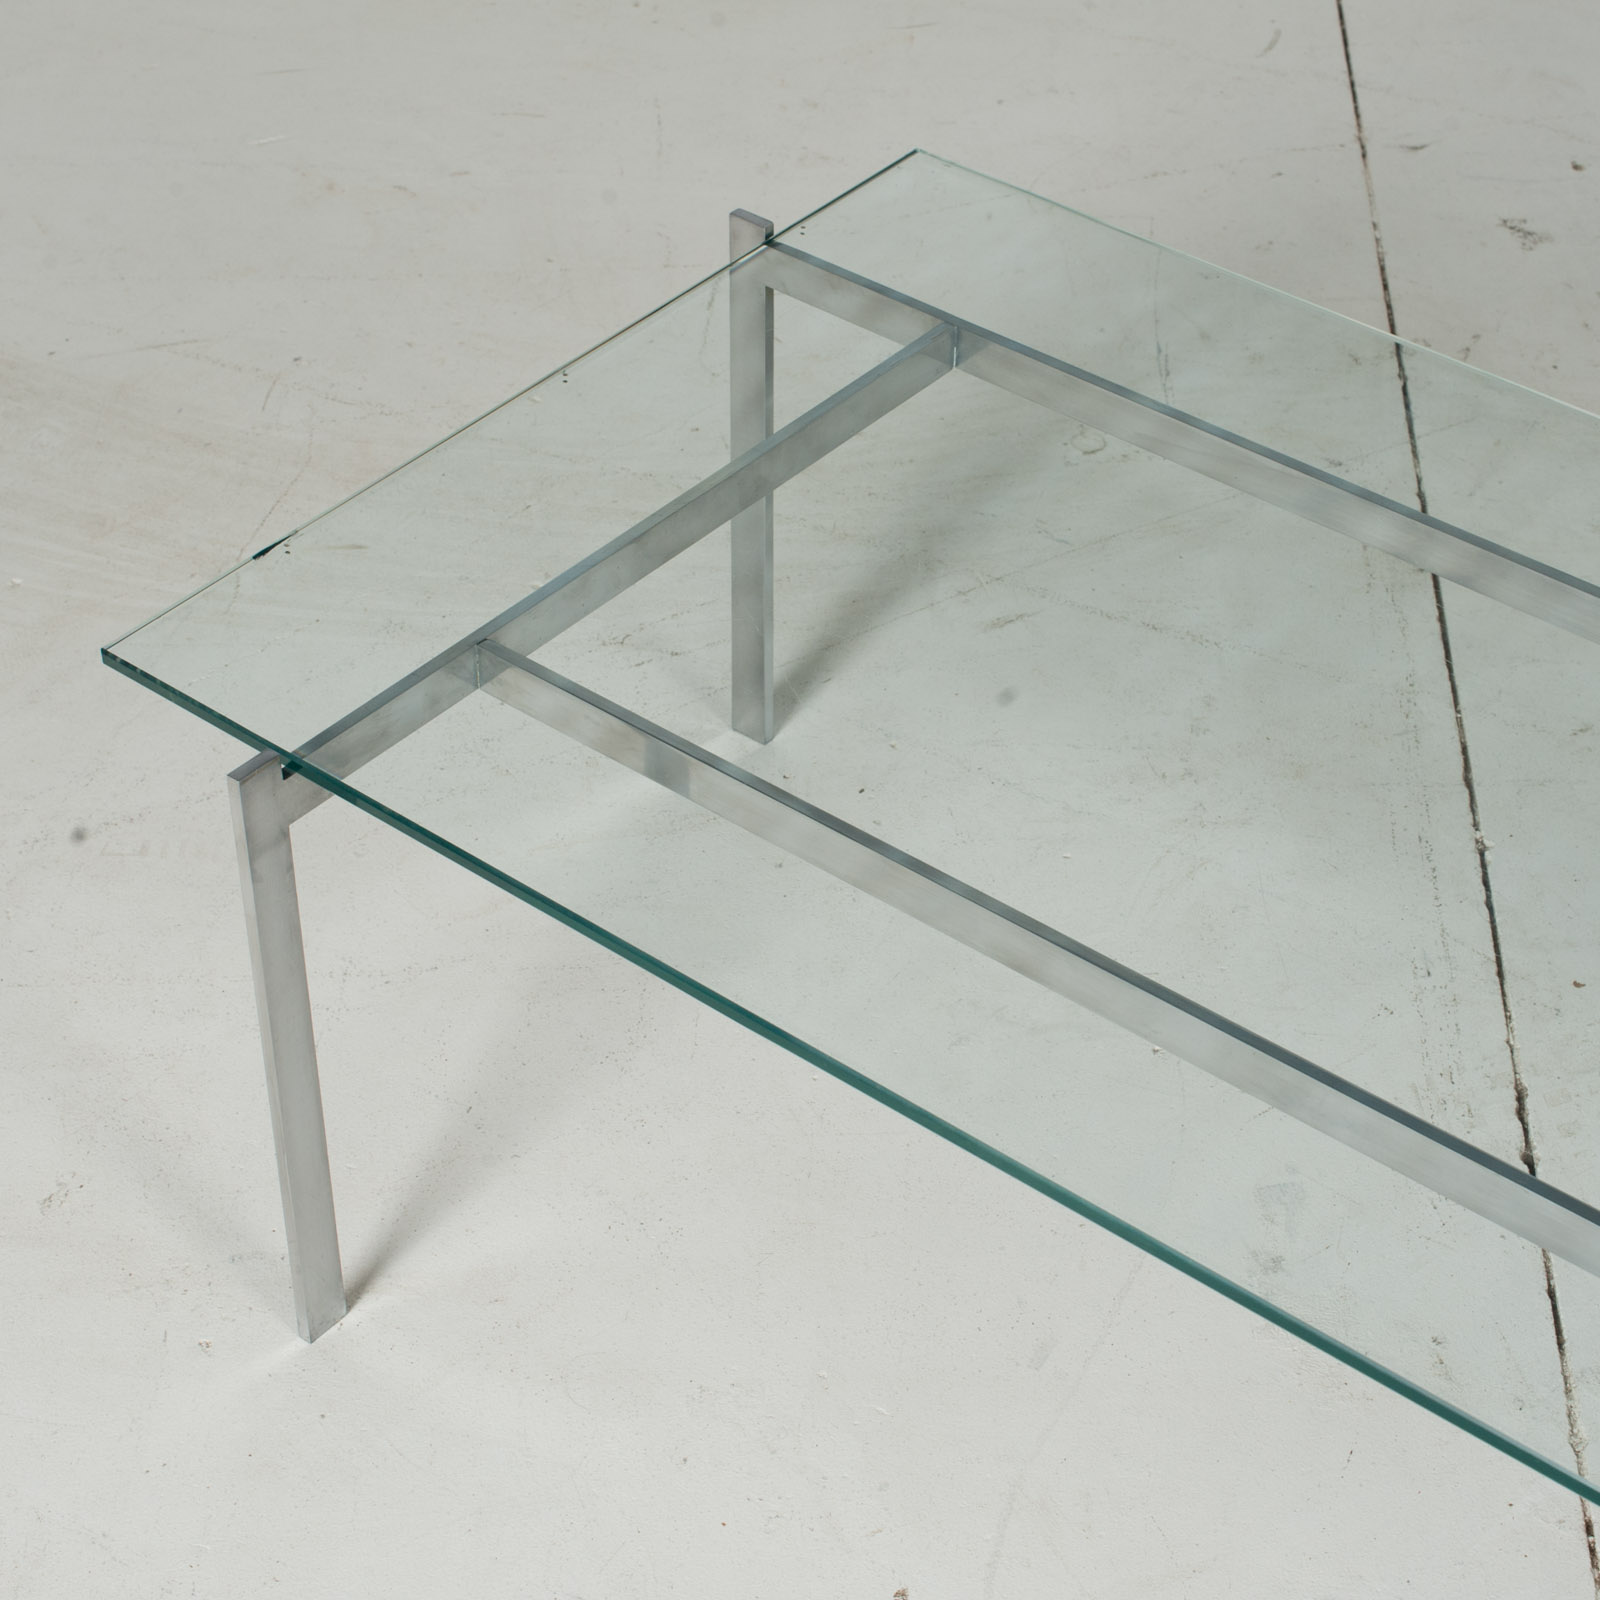 Coffee Table In The Style Of Poul Kjaerholm With Chrome And Glass, 1960s, Netherlands5